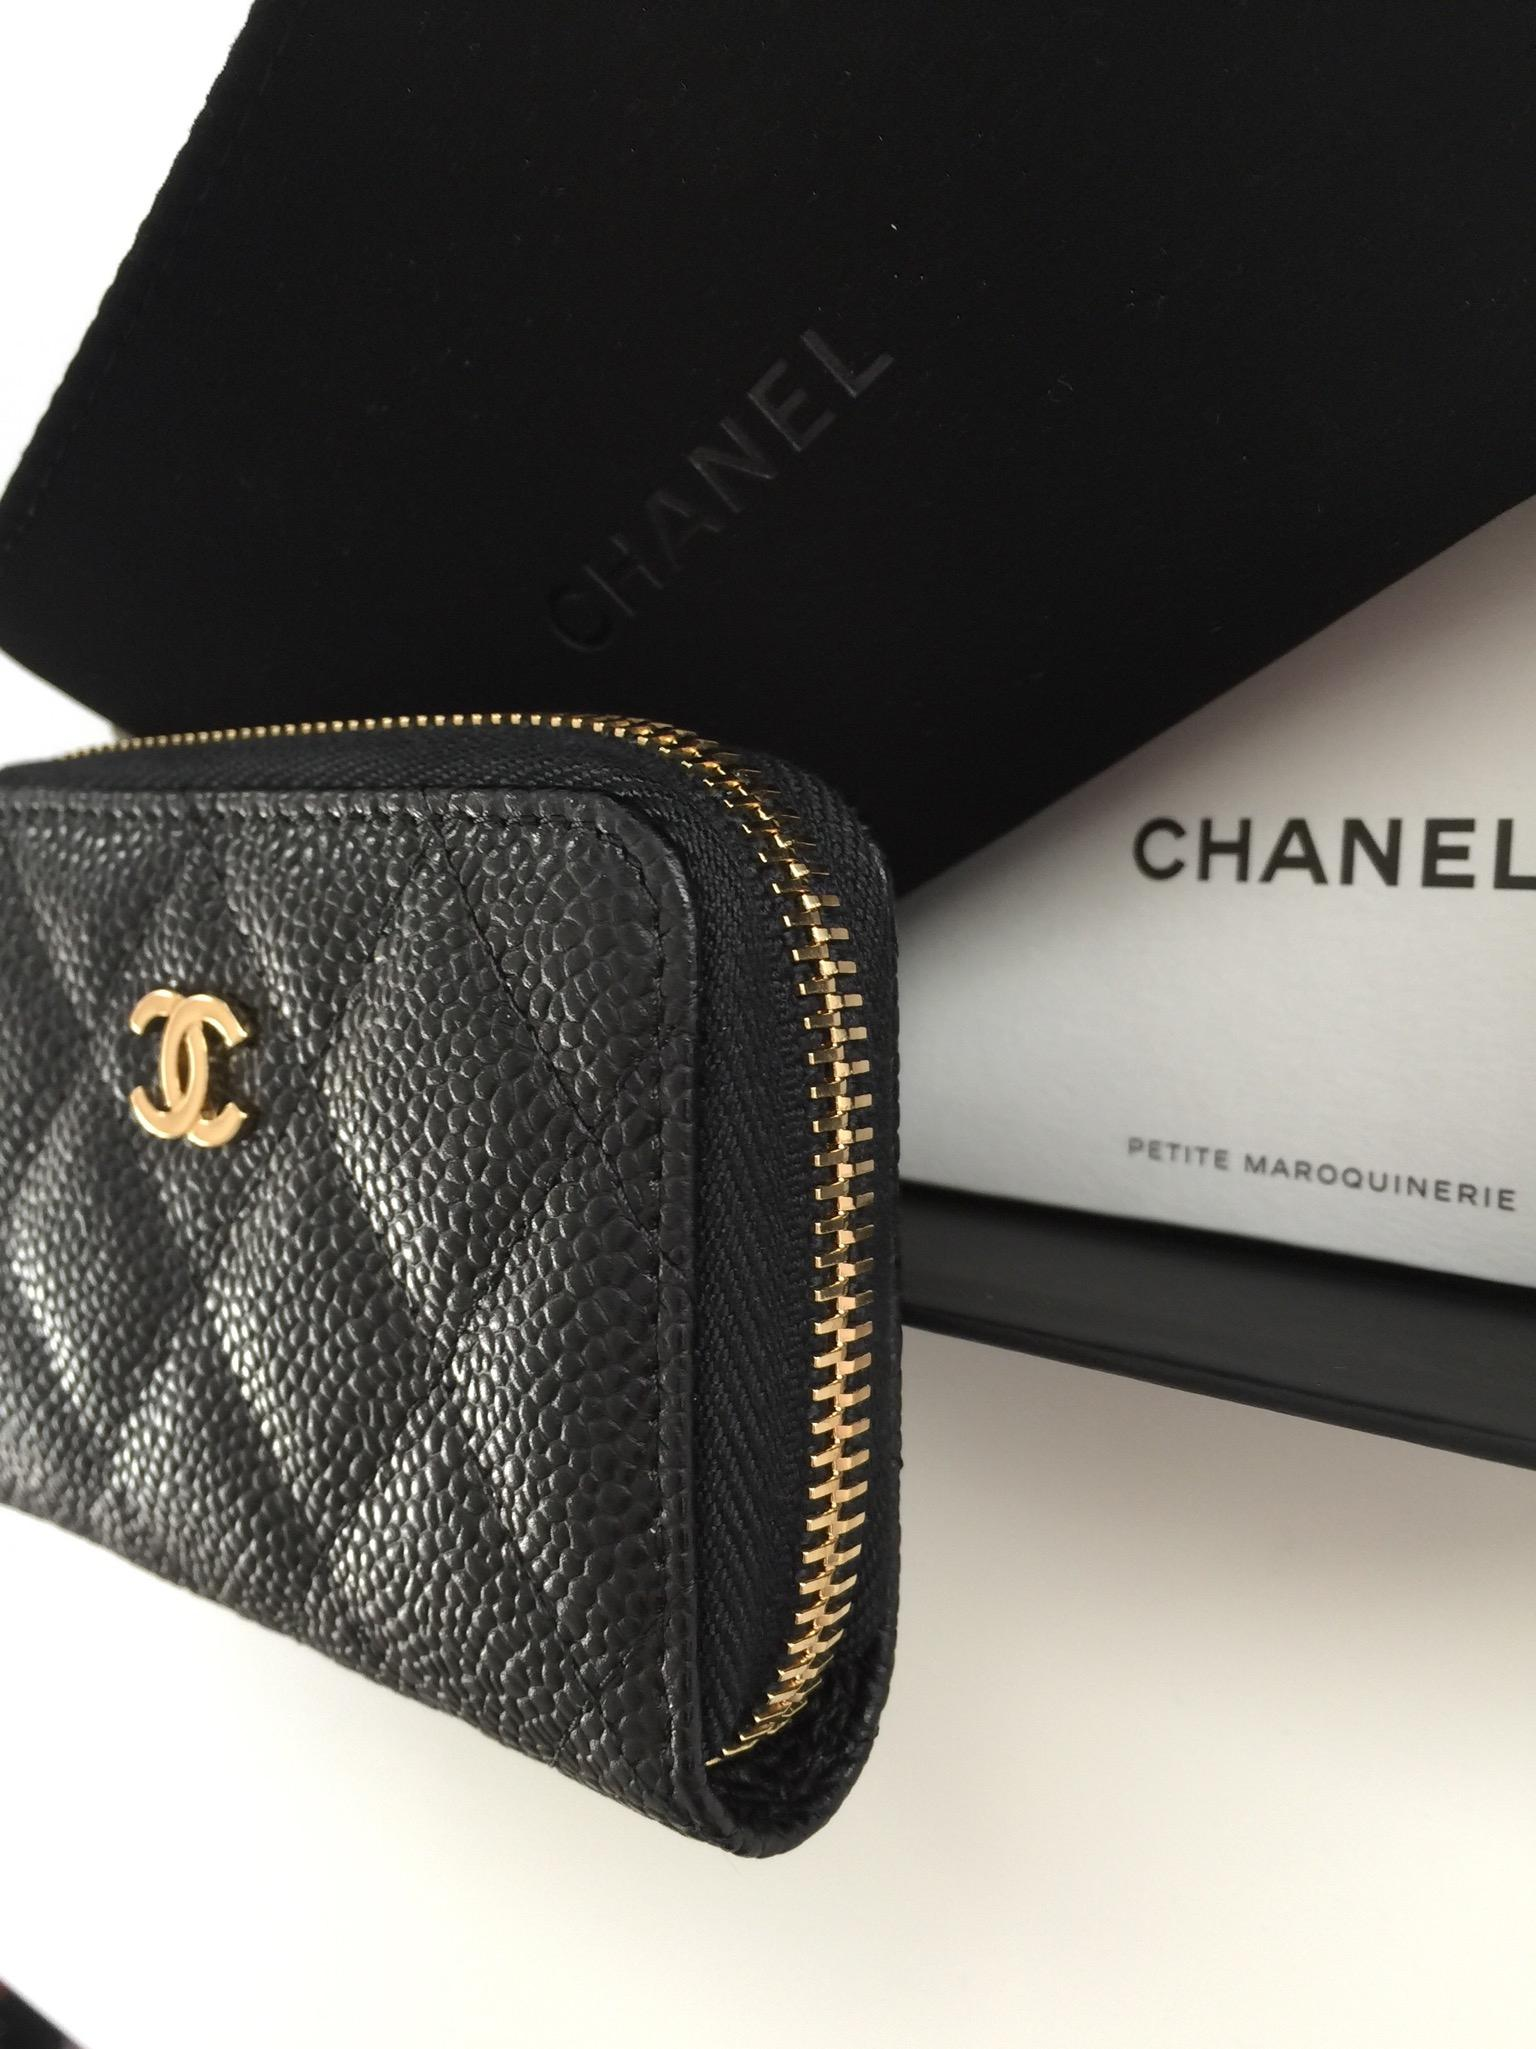 chanel zip coin purse. chanel o\u0027 coin purse gold in black caviar zip o